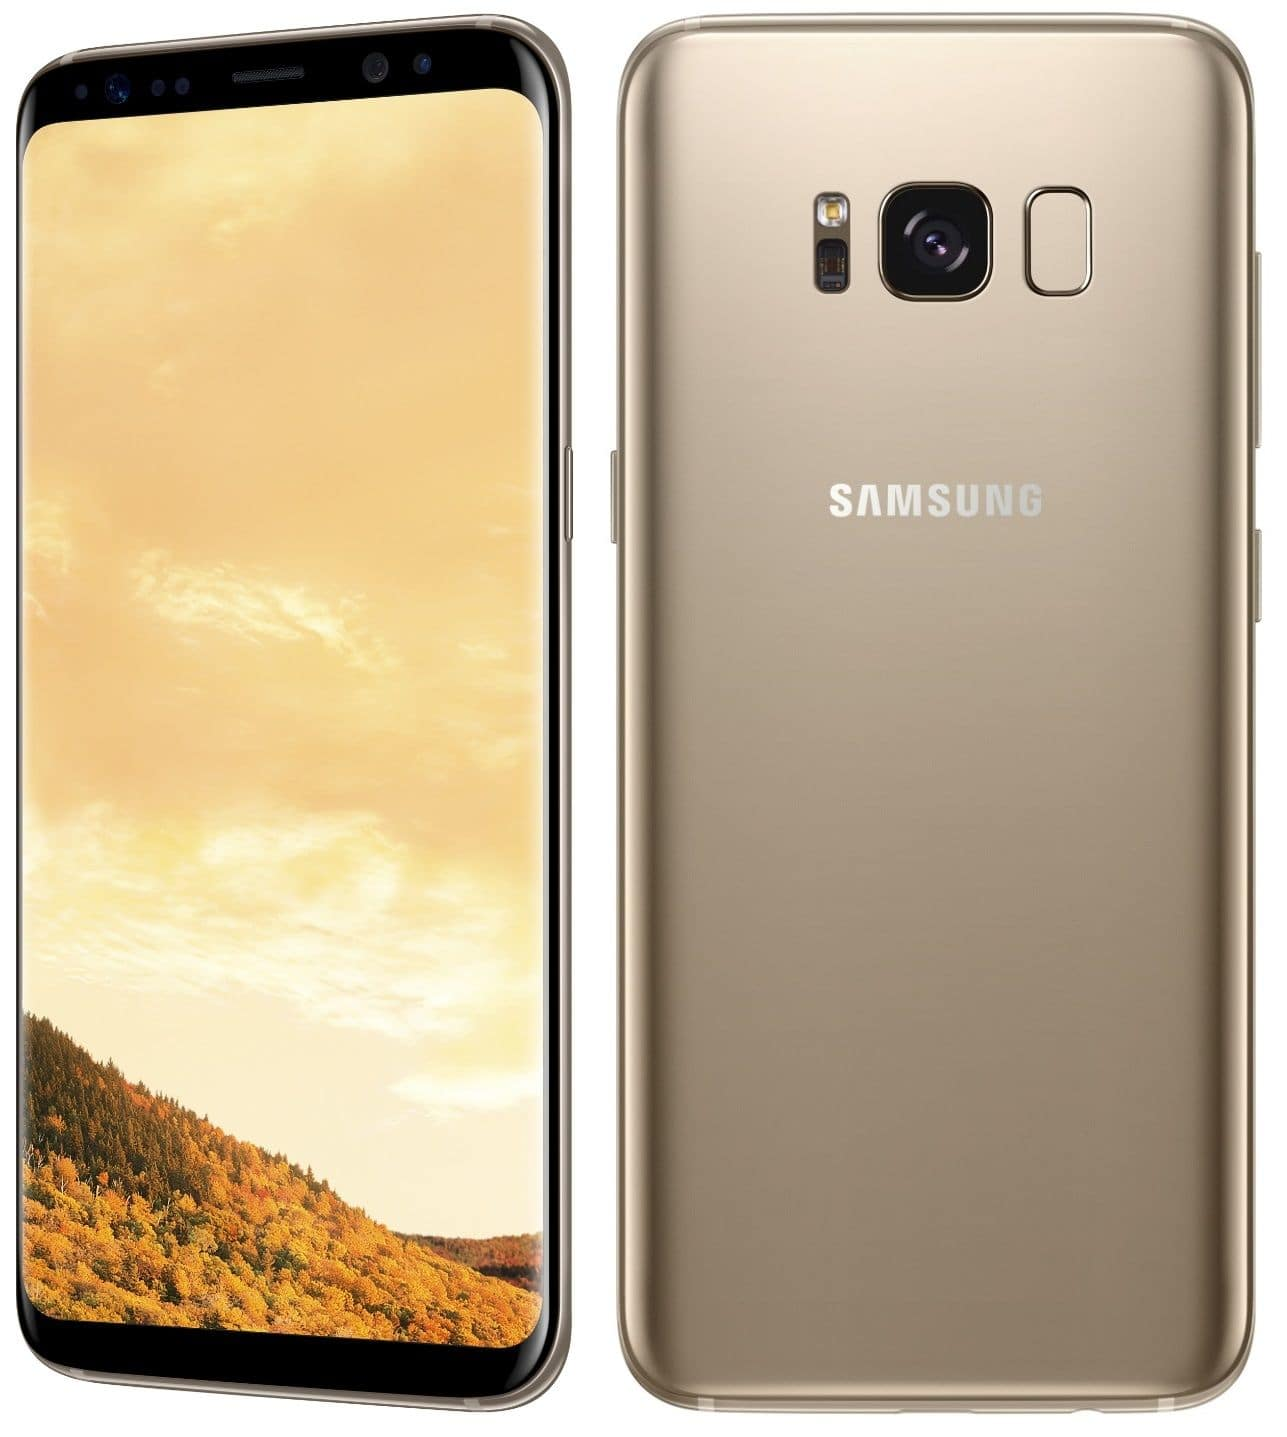 Samsung Galaxy S8 SM-G950FD Dual Sim (FACTORY UNLOCKED) Black Gold Gray Blue $569.99